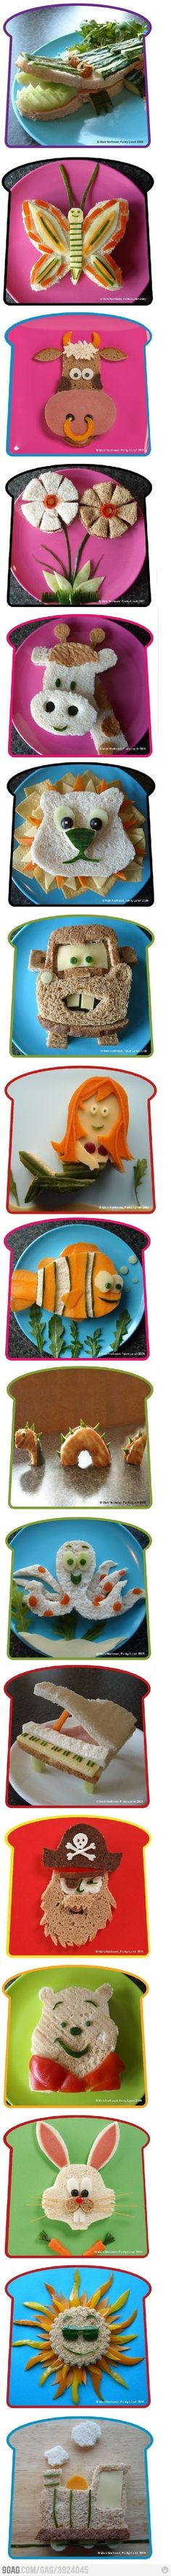 Sandwiches :) How CUTE!!   www.BlueRainbowDesign.com